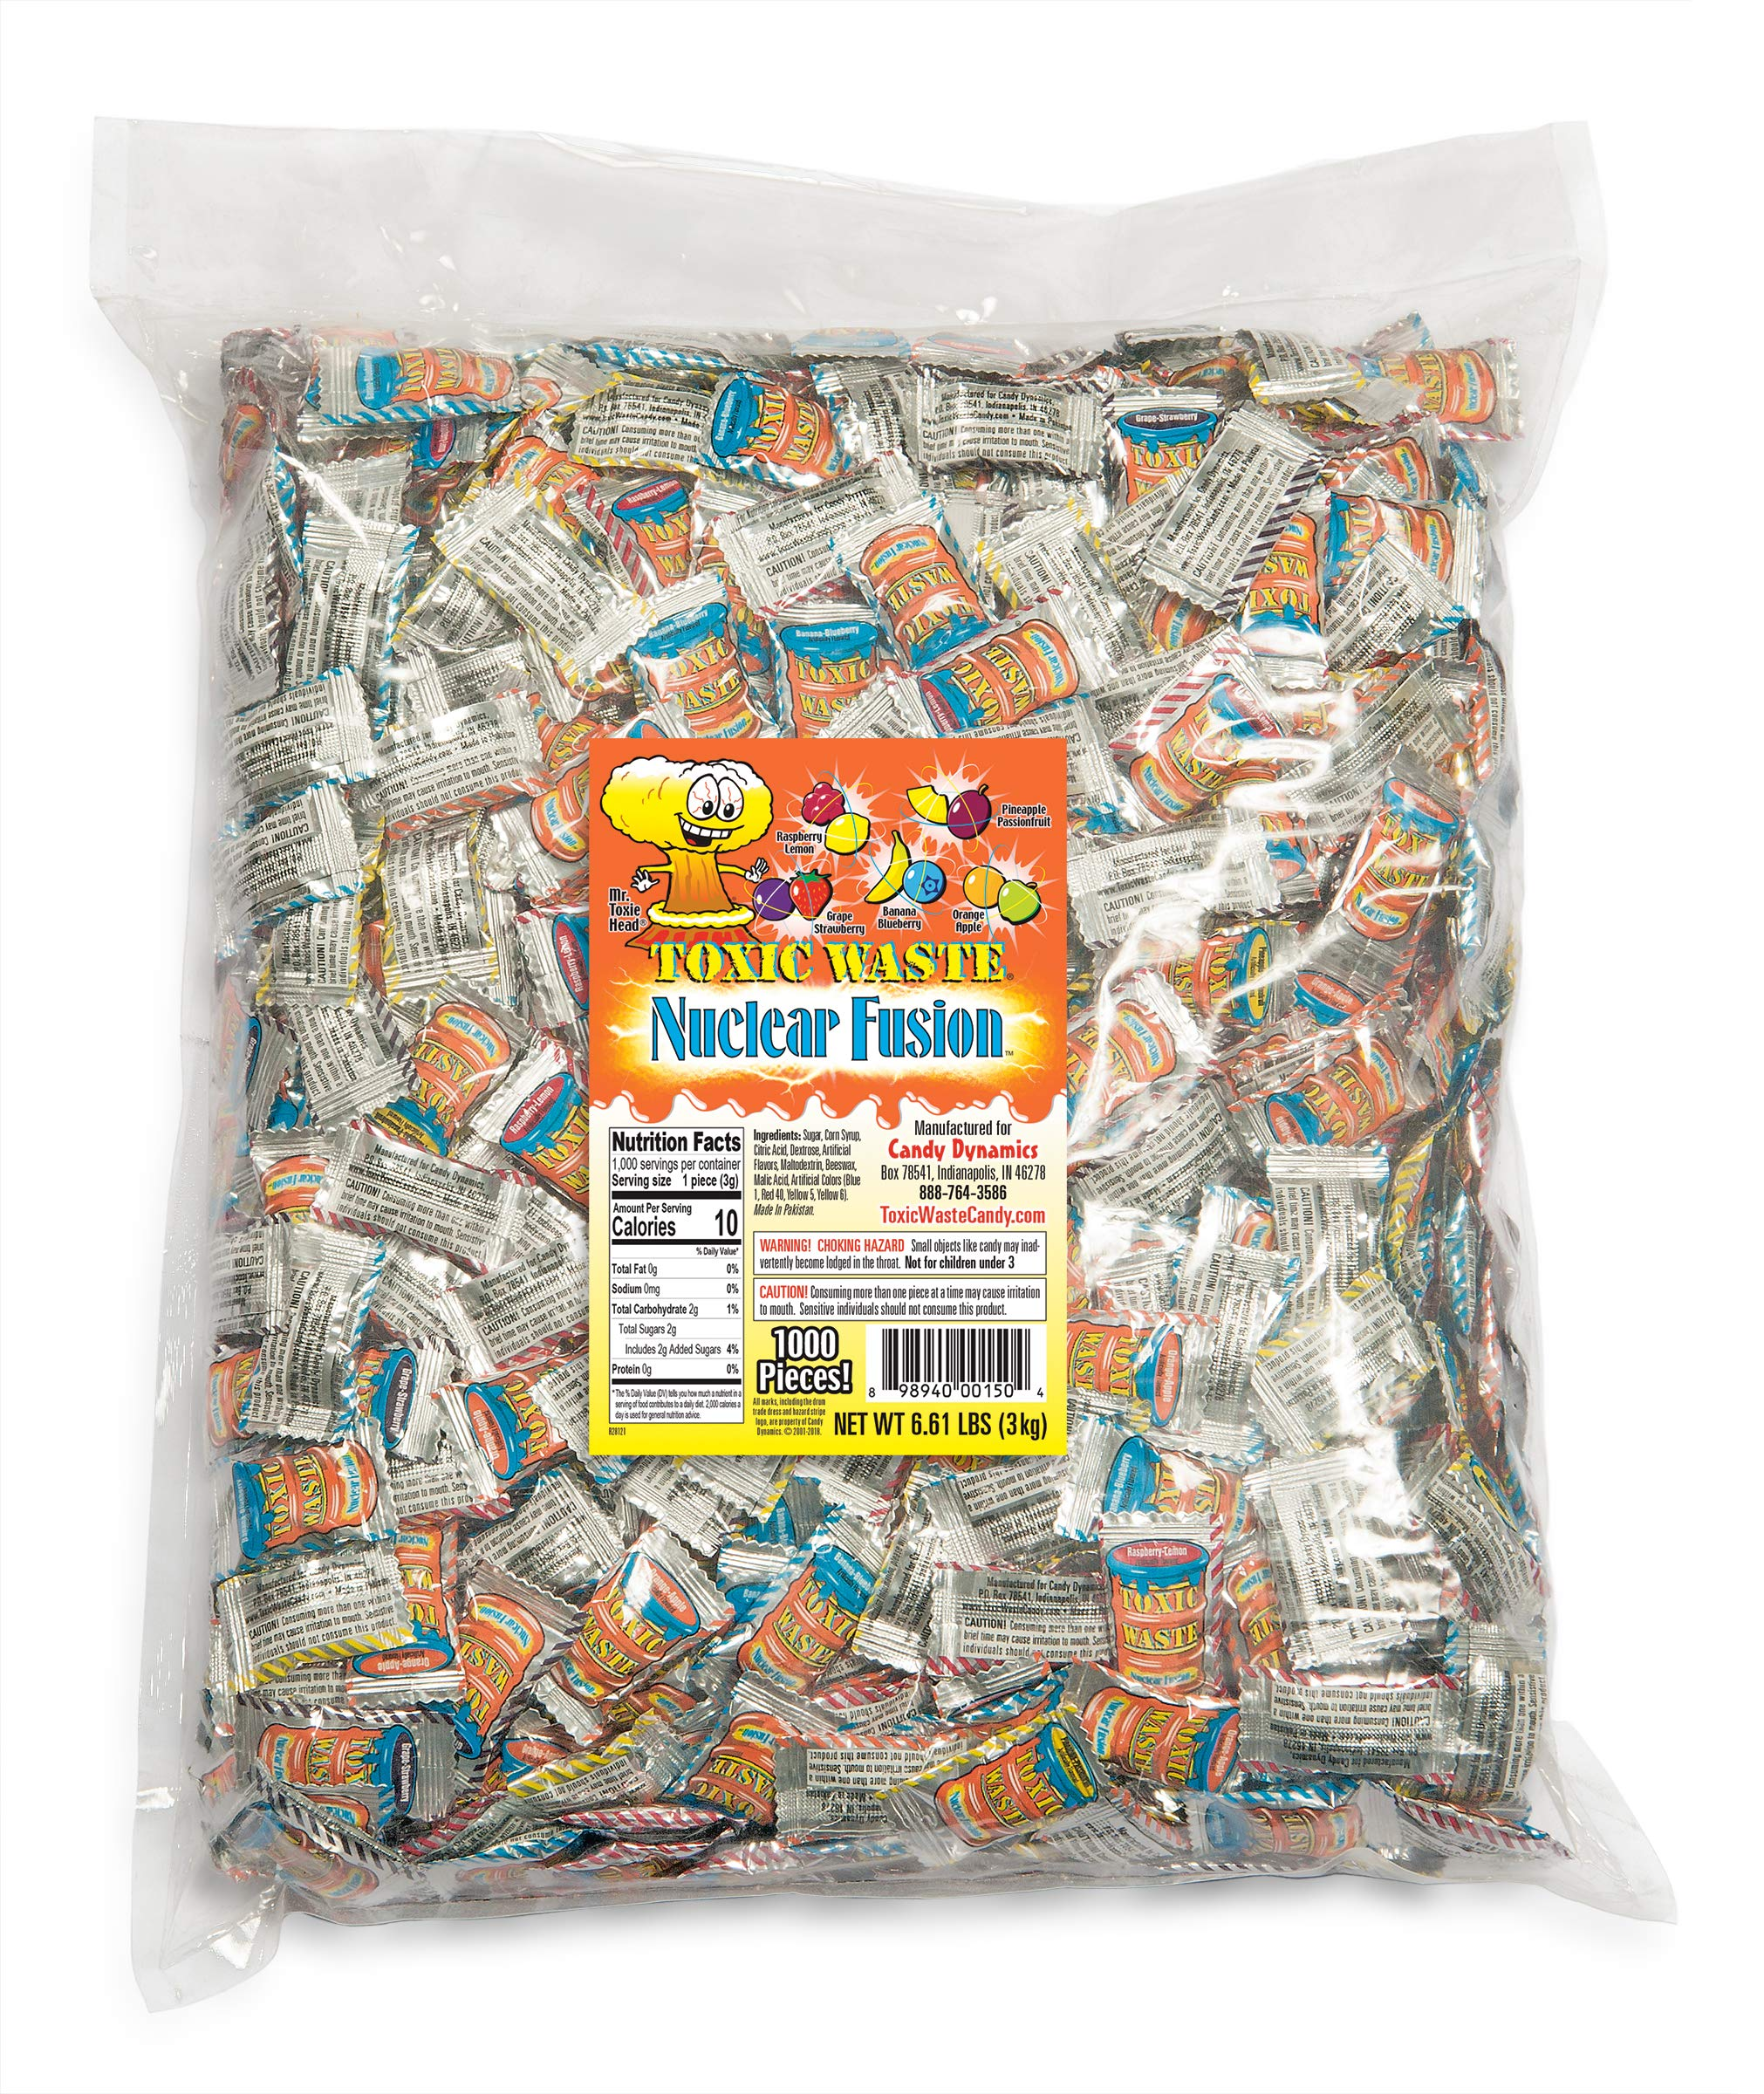 TOXIC WASTE Nuclear Fusion Bulk Poly Bag, 8.0 Pound by TOXIC WASTE (Image #1)